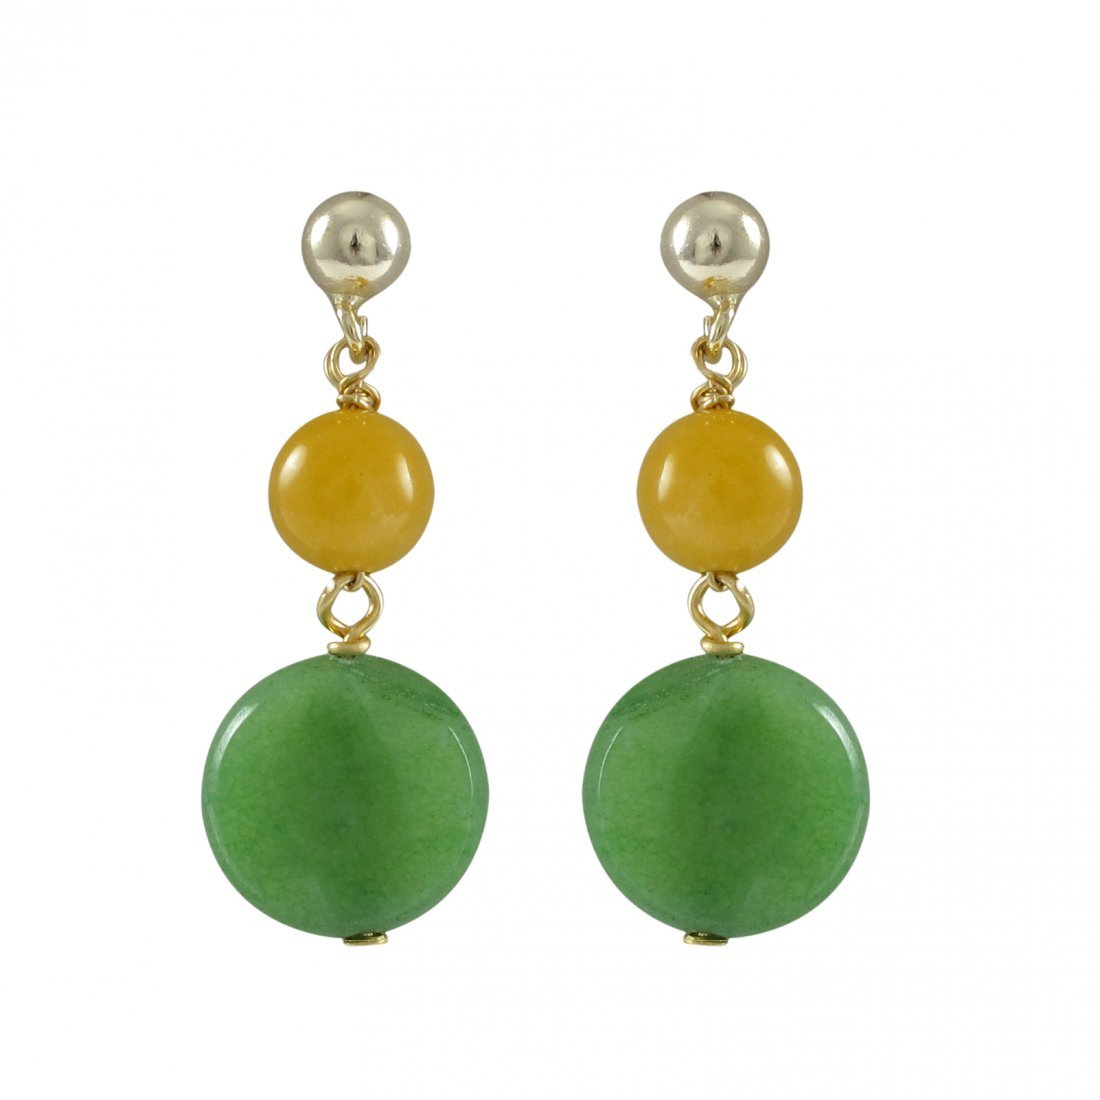 Honey 6mm Round Ball And Apple Green 10mm Round Flat Se